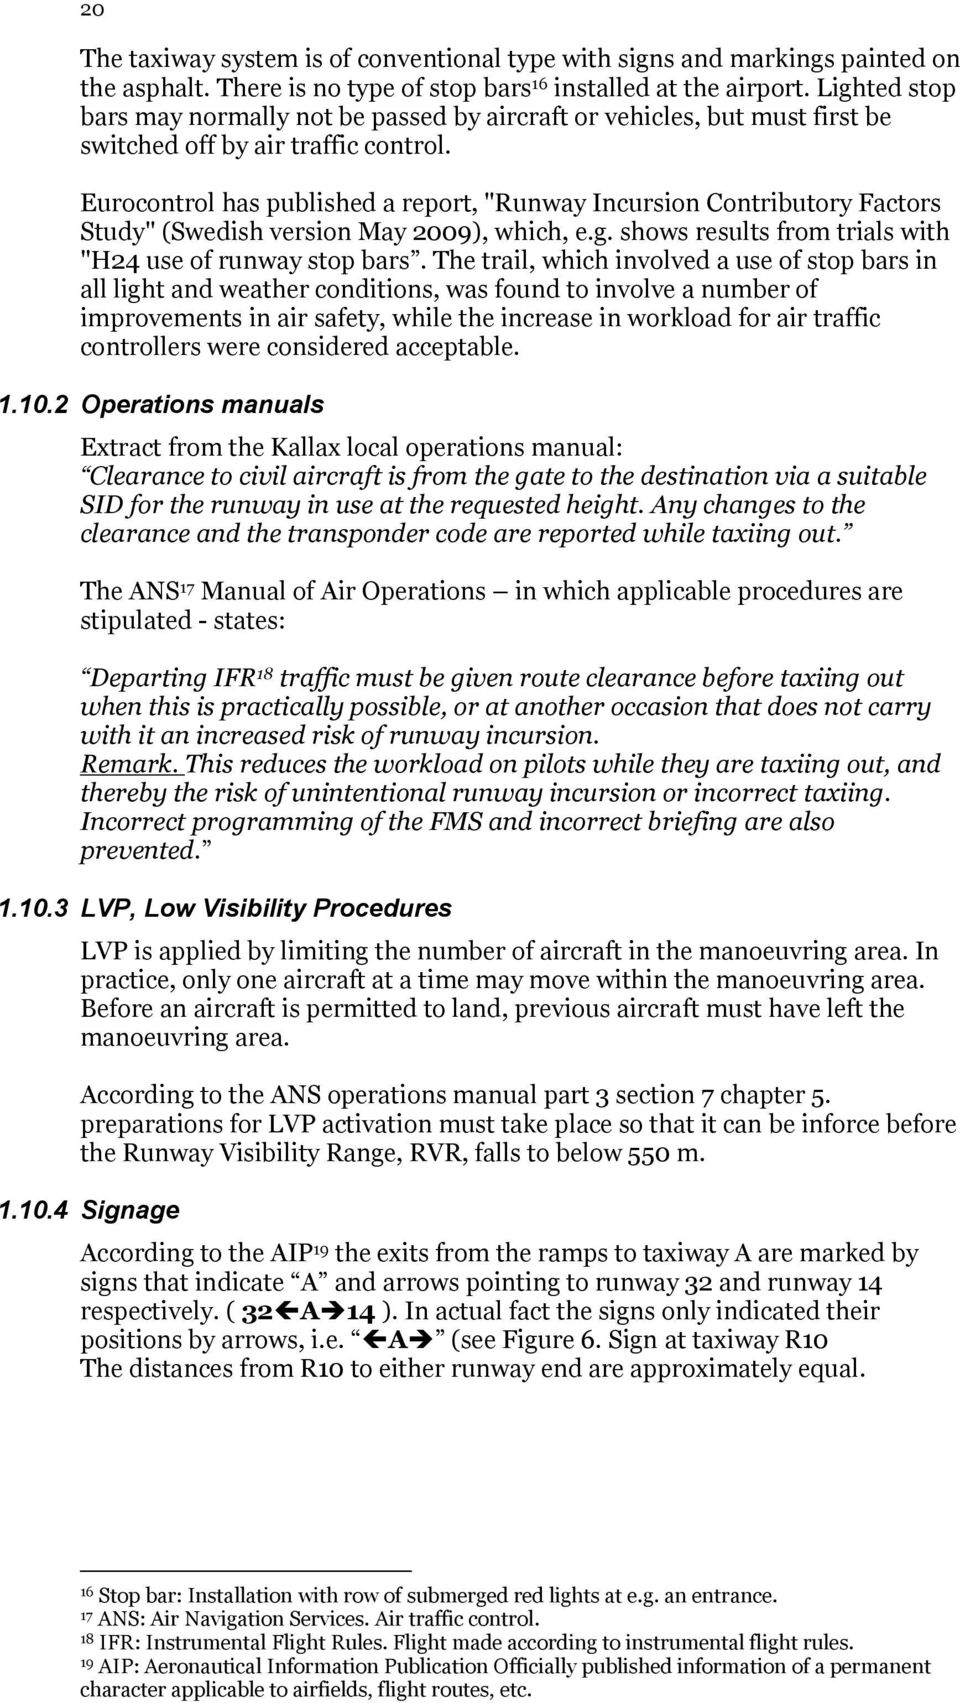 "Eurocontrol has published a report, ""Runway Incursion Contributory Factors Study"" (Swedish version May 2009), which, e.g. shows results from trials with ""H24 use of runway stop bars."